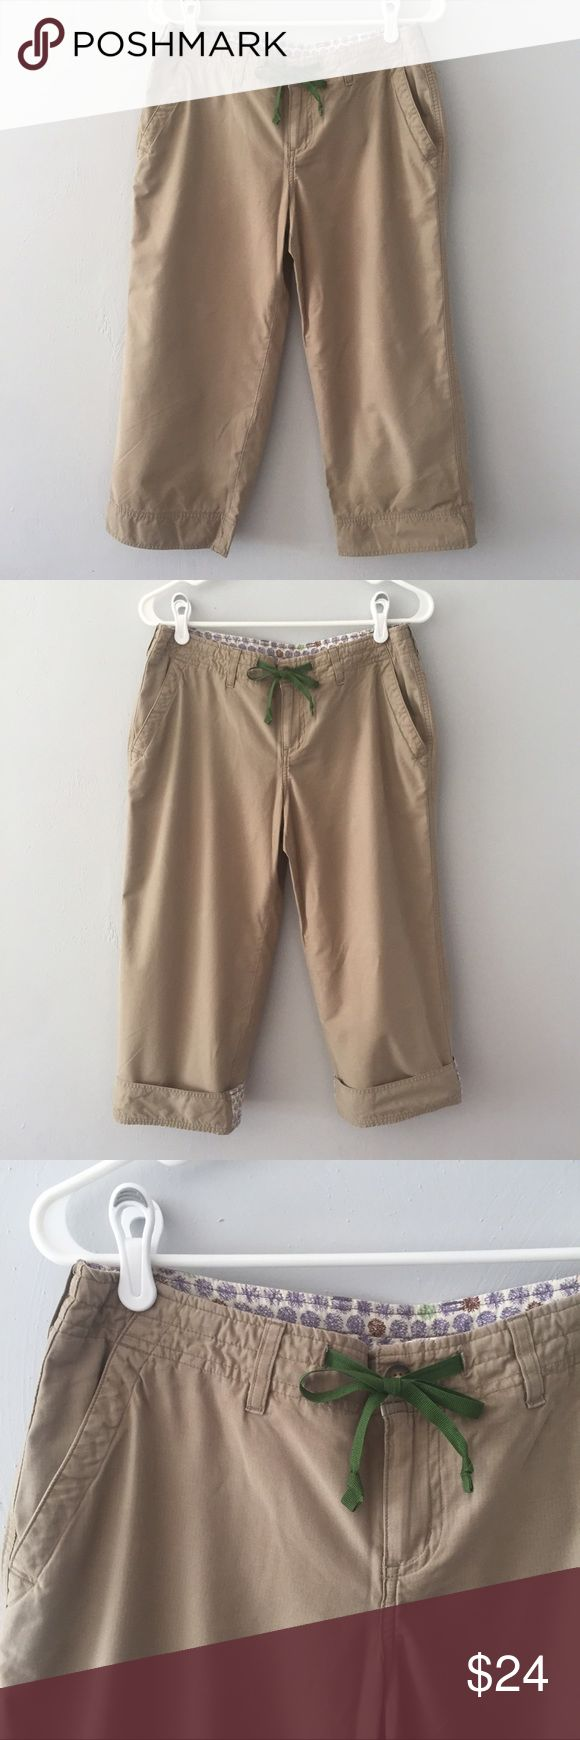 Horny Toad Khaki Capris This is pair of Horny Toad (now Toad & Co) classic khaki capris. You can wear them down or roll up the cuffs to see a fun, contrasting floral pattern. The fabric is a cotton/poly blend so they will keep you cool on a warm day. Horny Toad Pants Capris